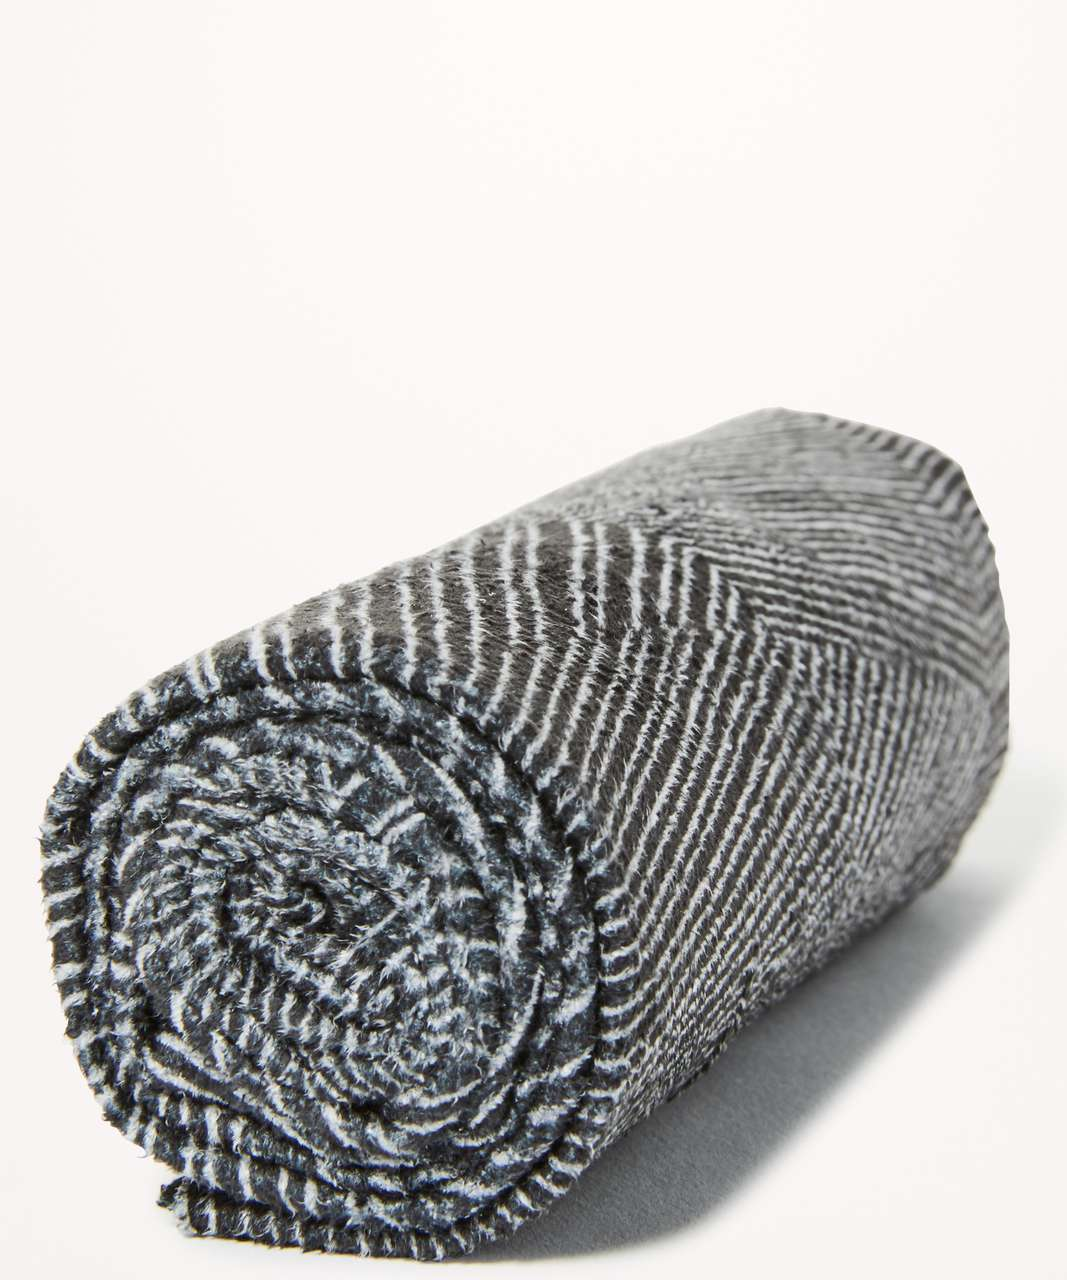 Lululemon The (Small) Towel - Etch Maxi Ice Grey Black